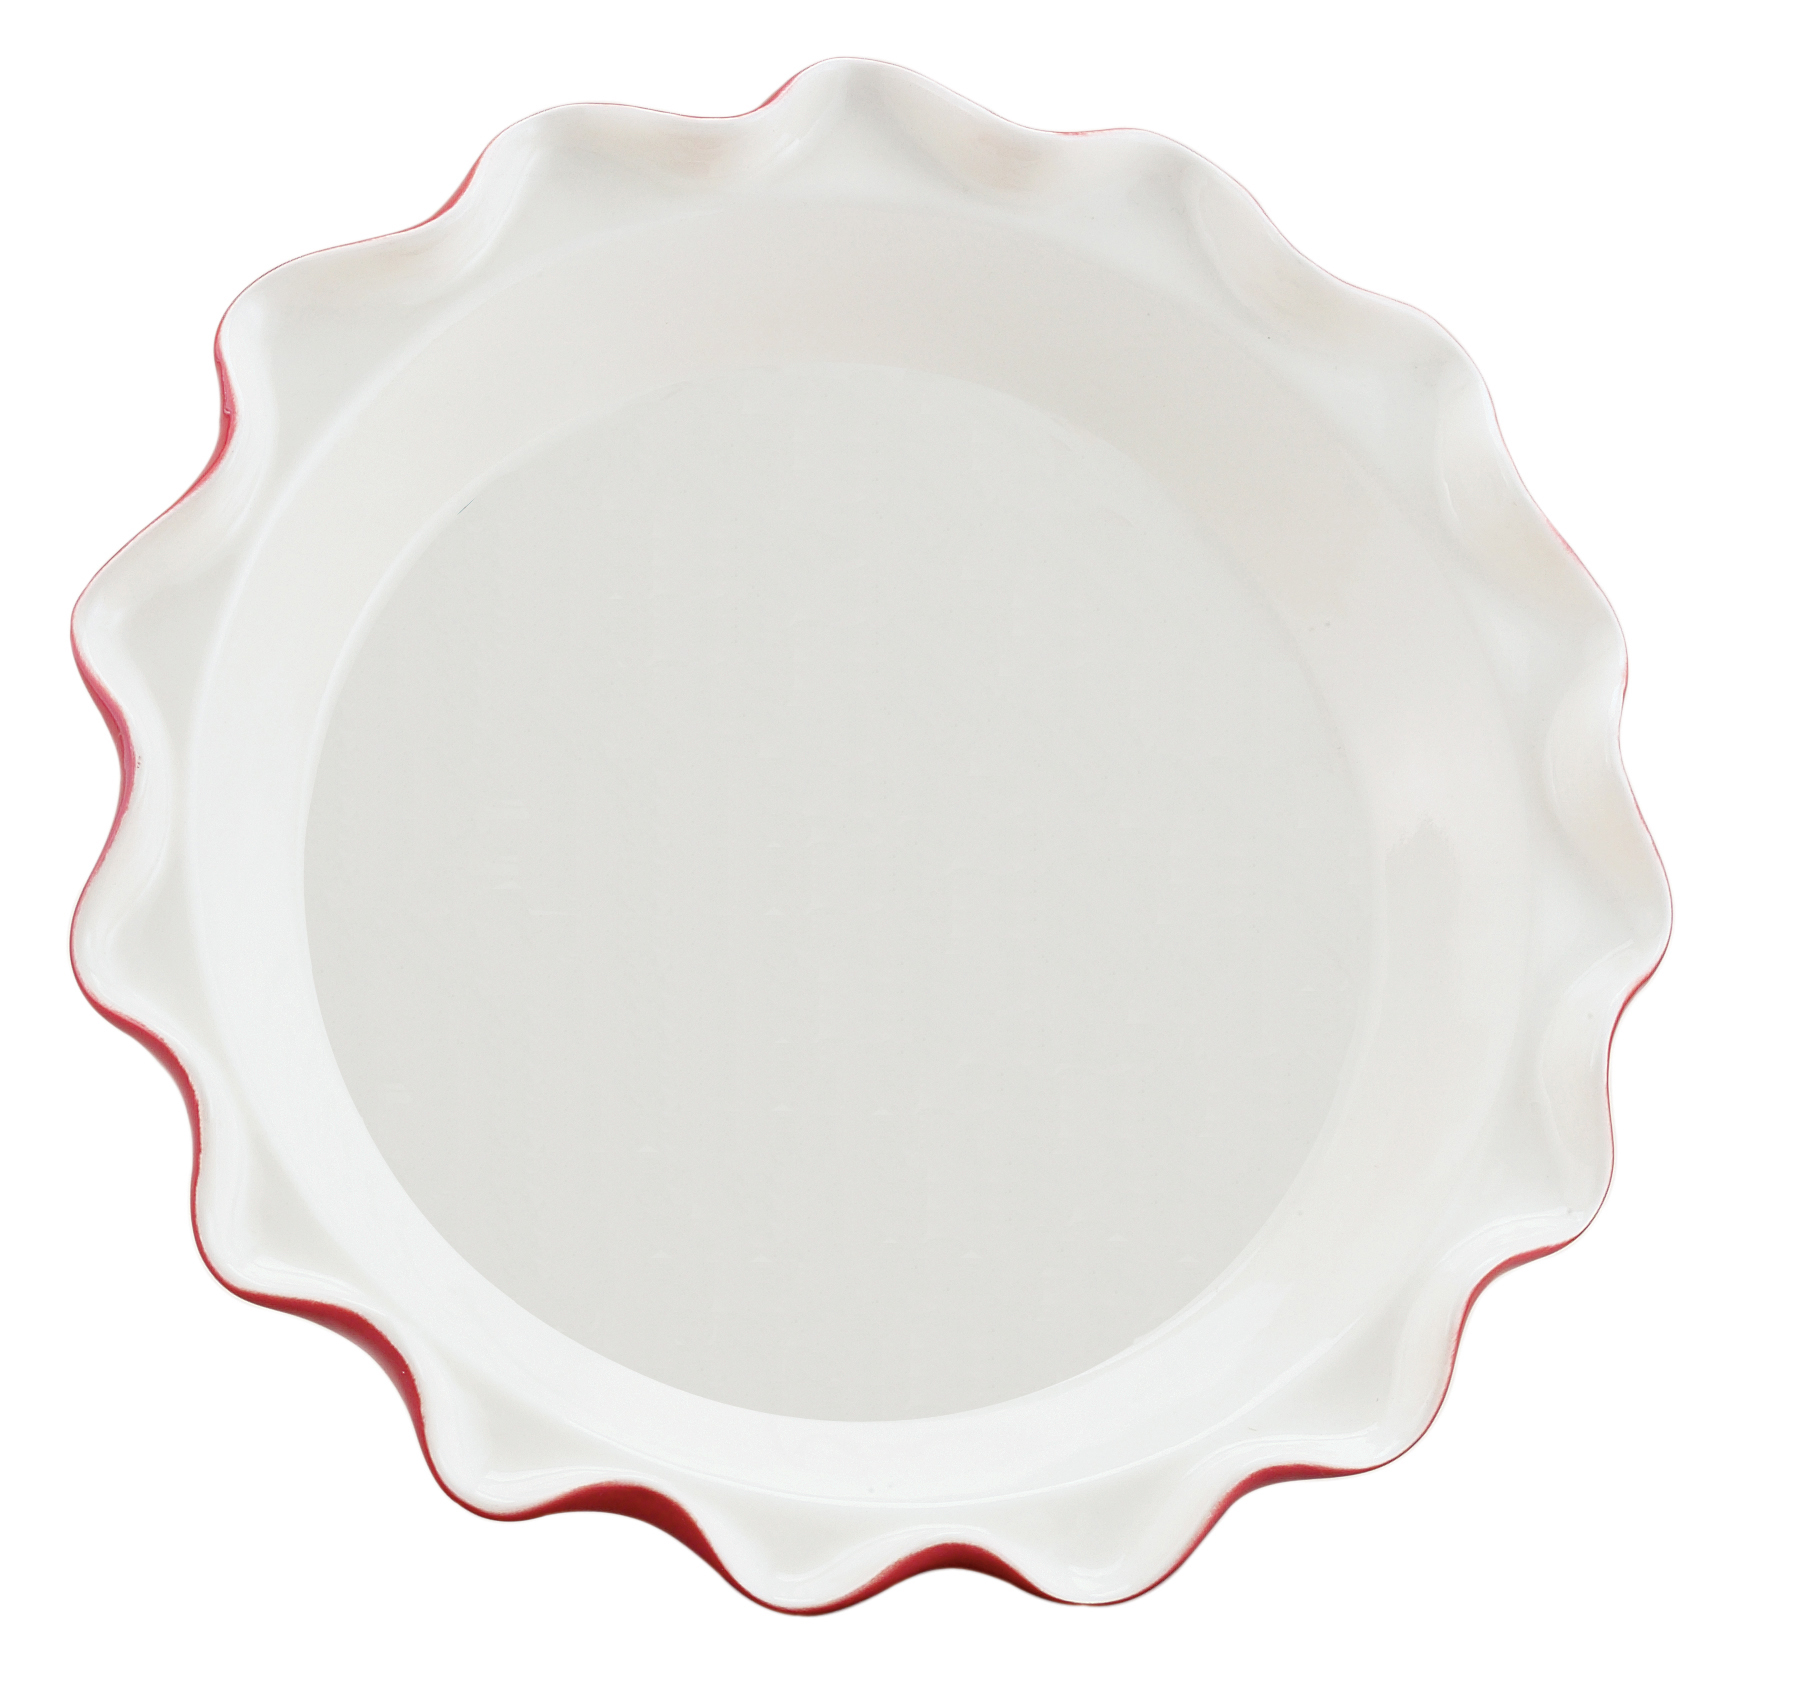 Rose Levy Beranbaum's Rose's Perfect Pie Plate with Recip...